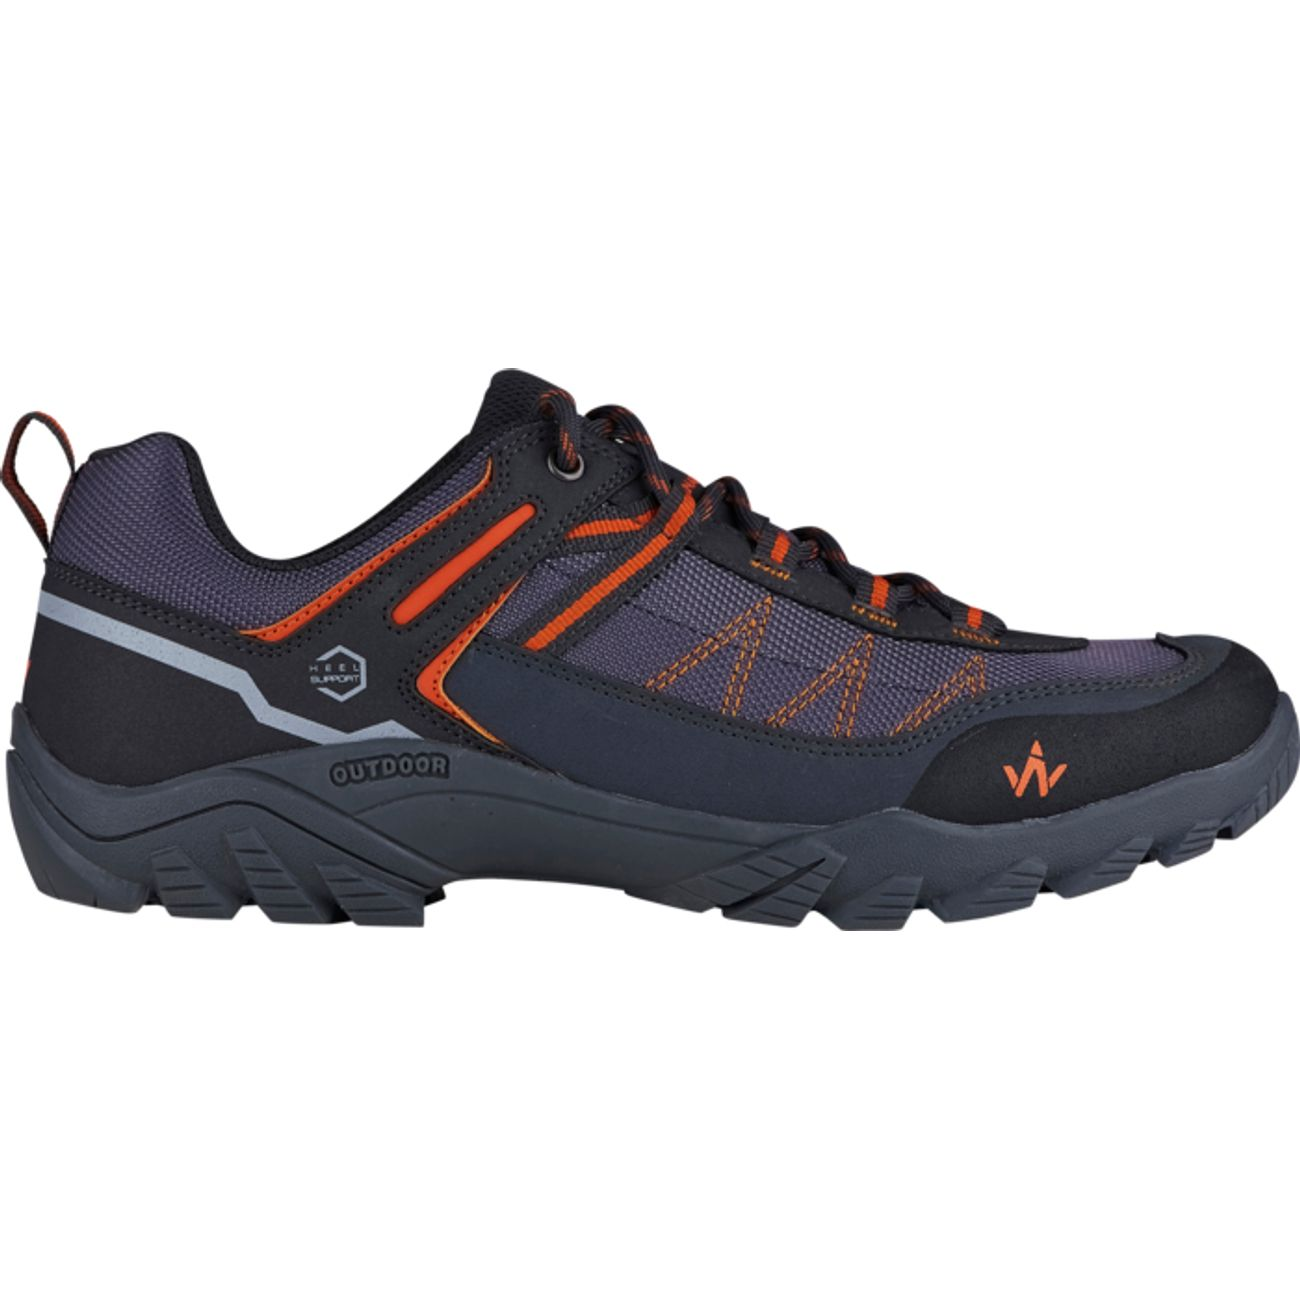 CHAUSSURES BASSES Randonnée mixte WANABEE HIKE 200 LOW